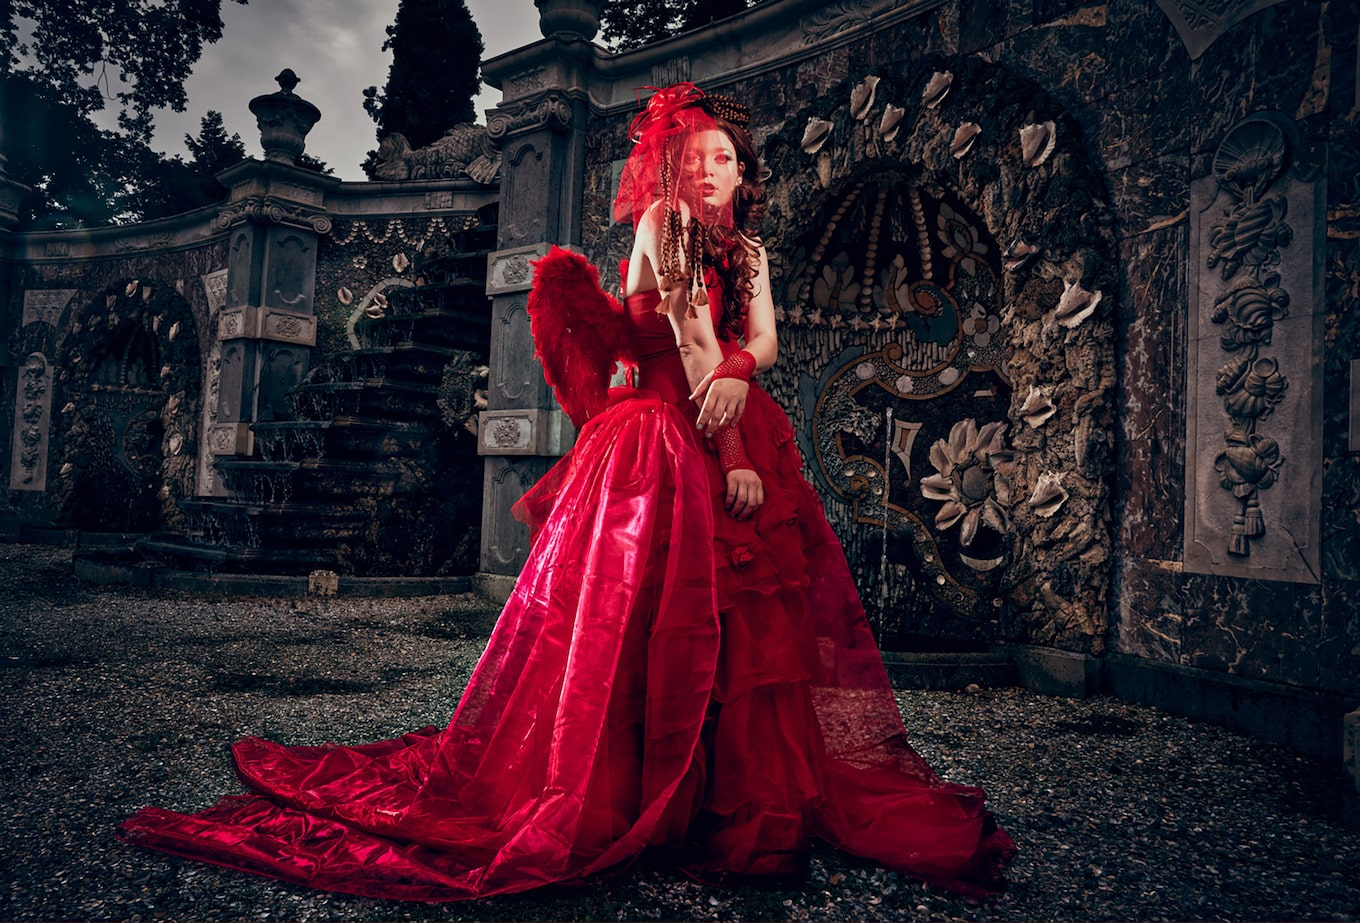 Frank-Doorhof-sony-alpha-7RII-model-in-red-dress-in-front-of-gothic-castle-backdrop